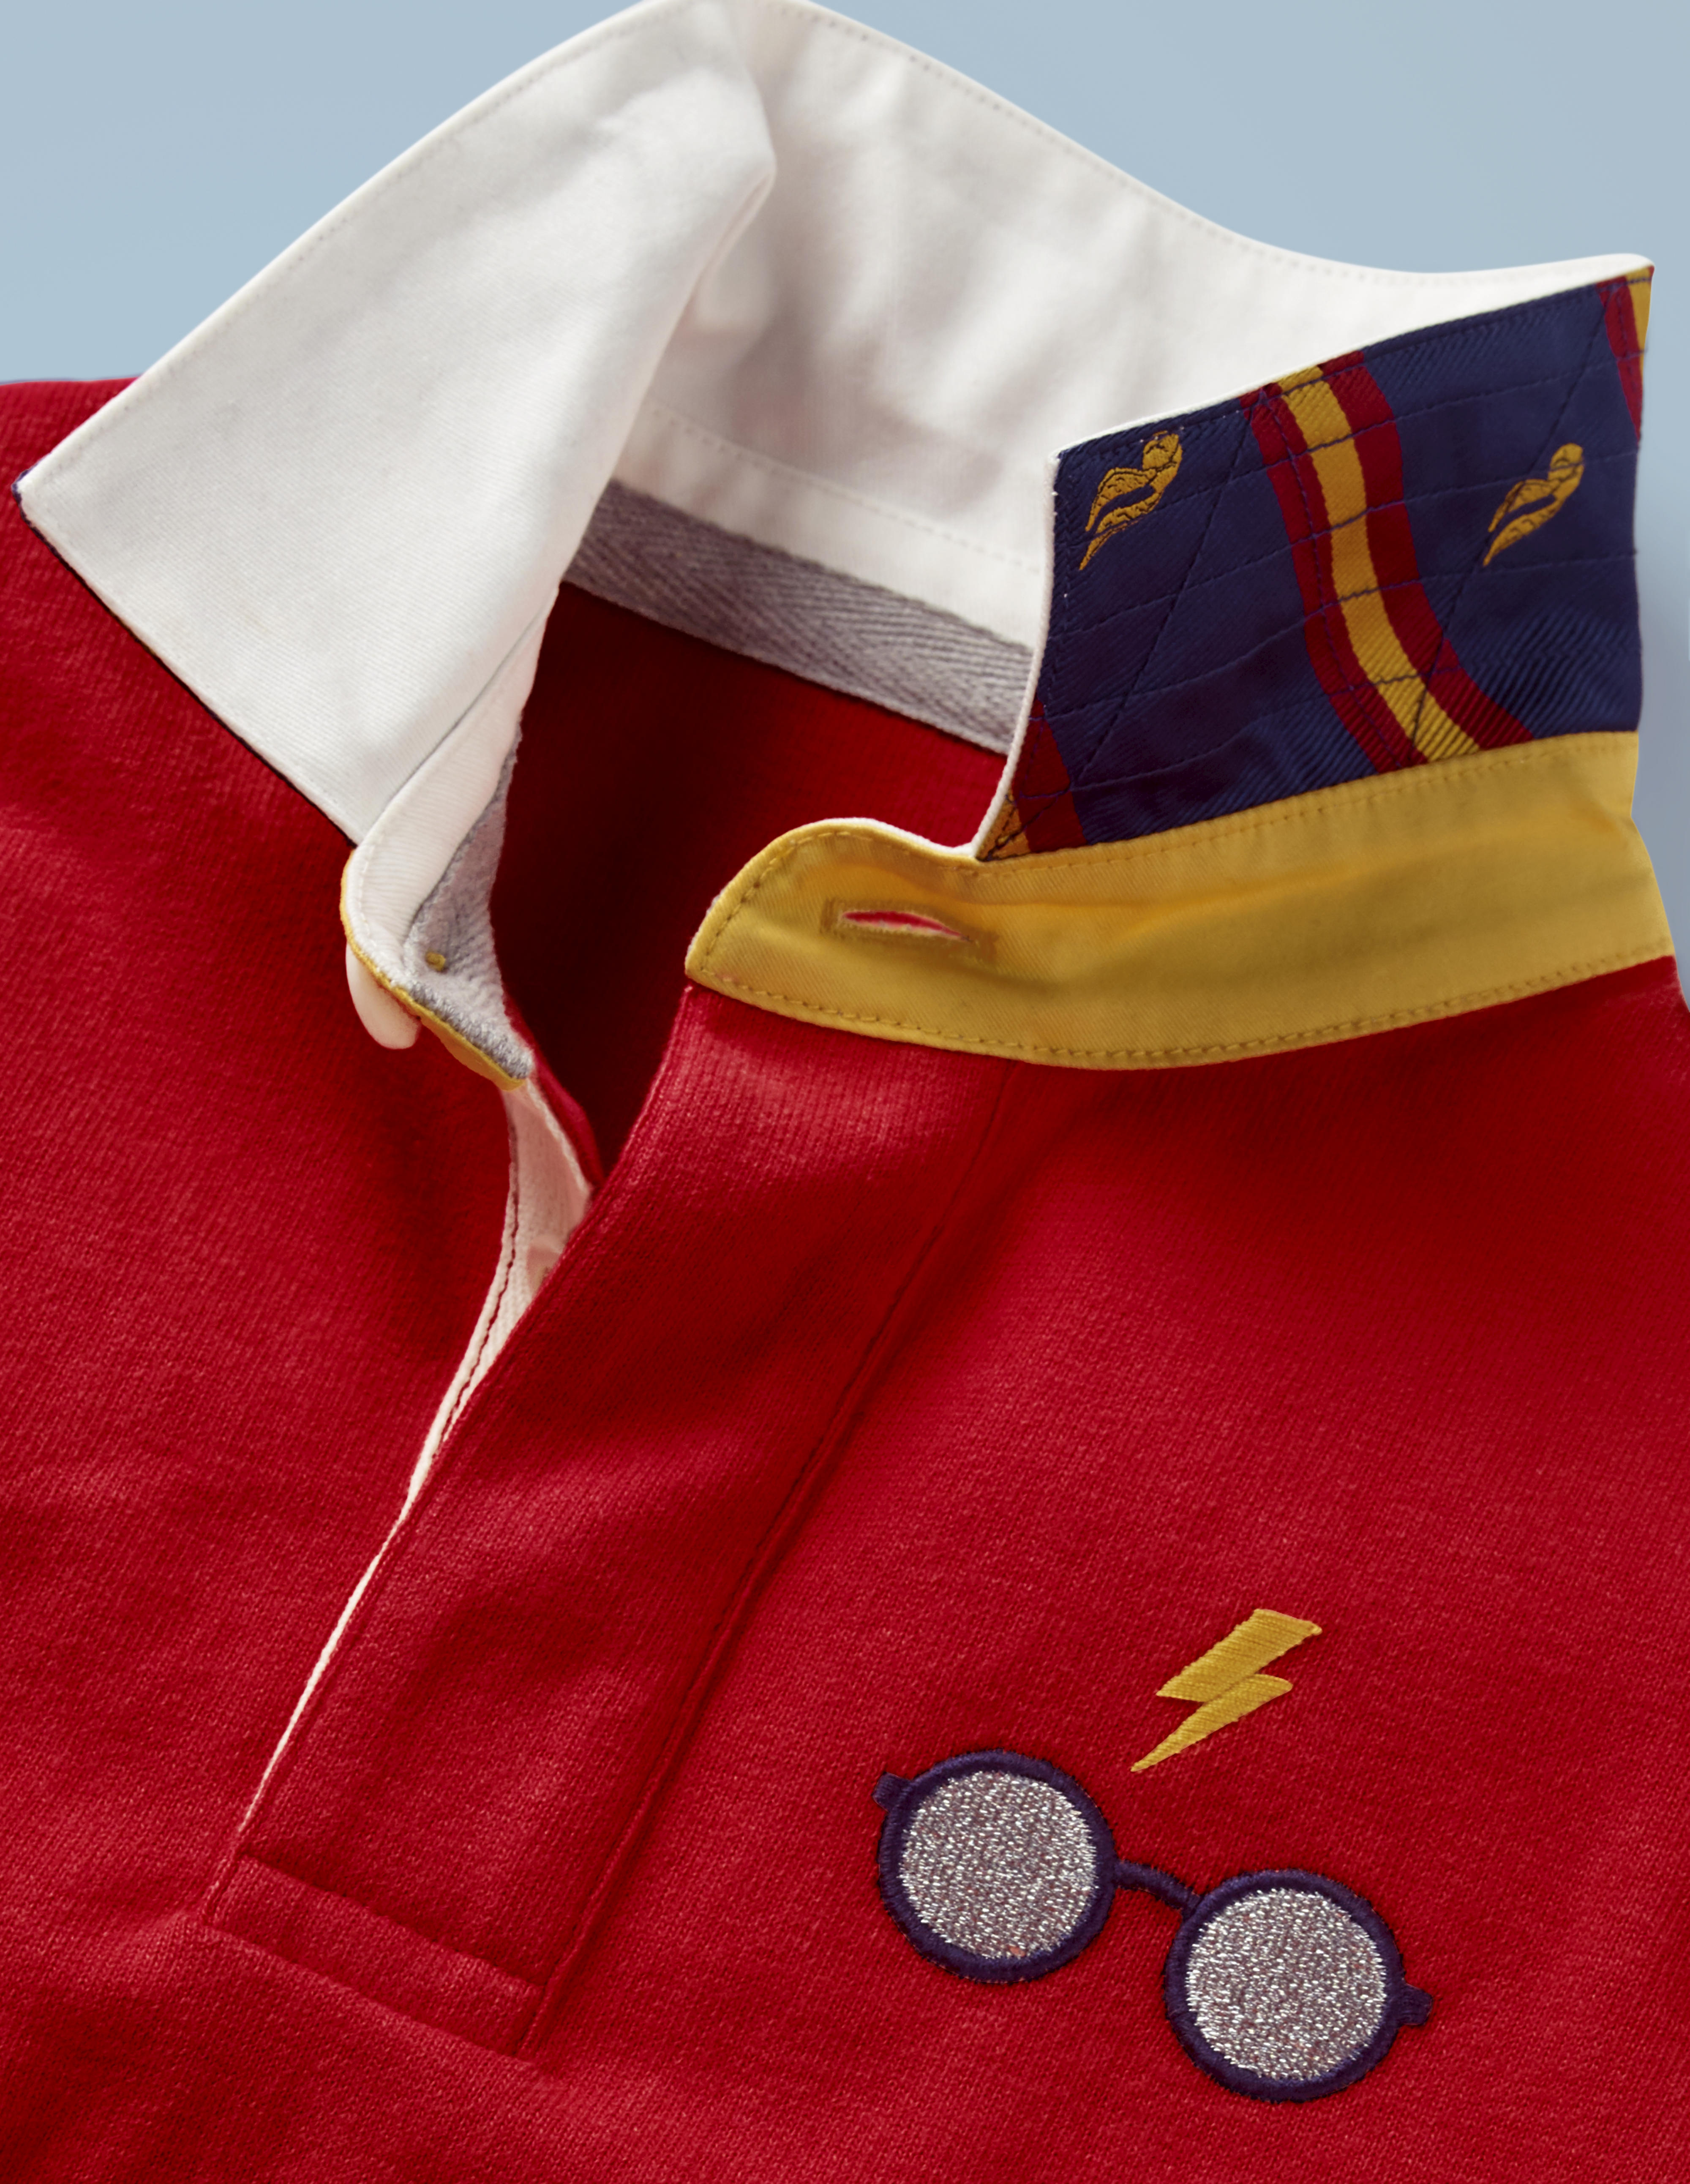 This close-up of the Mini Boden Hogwarts Rugby Shirt in red provides a better look at the collar design and glasses-and-scar logo in the front pocket area. It retails at £30.